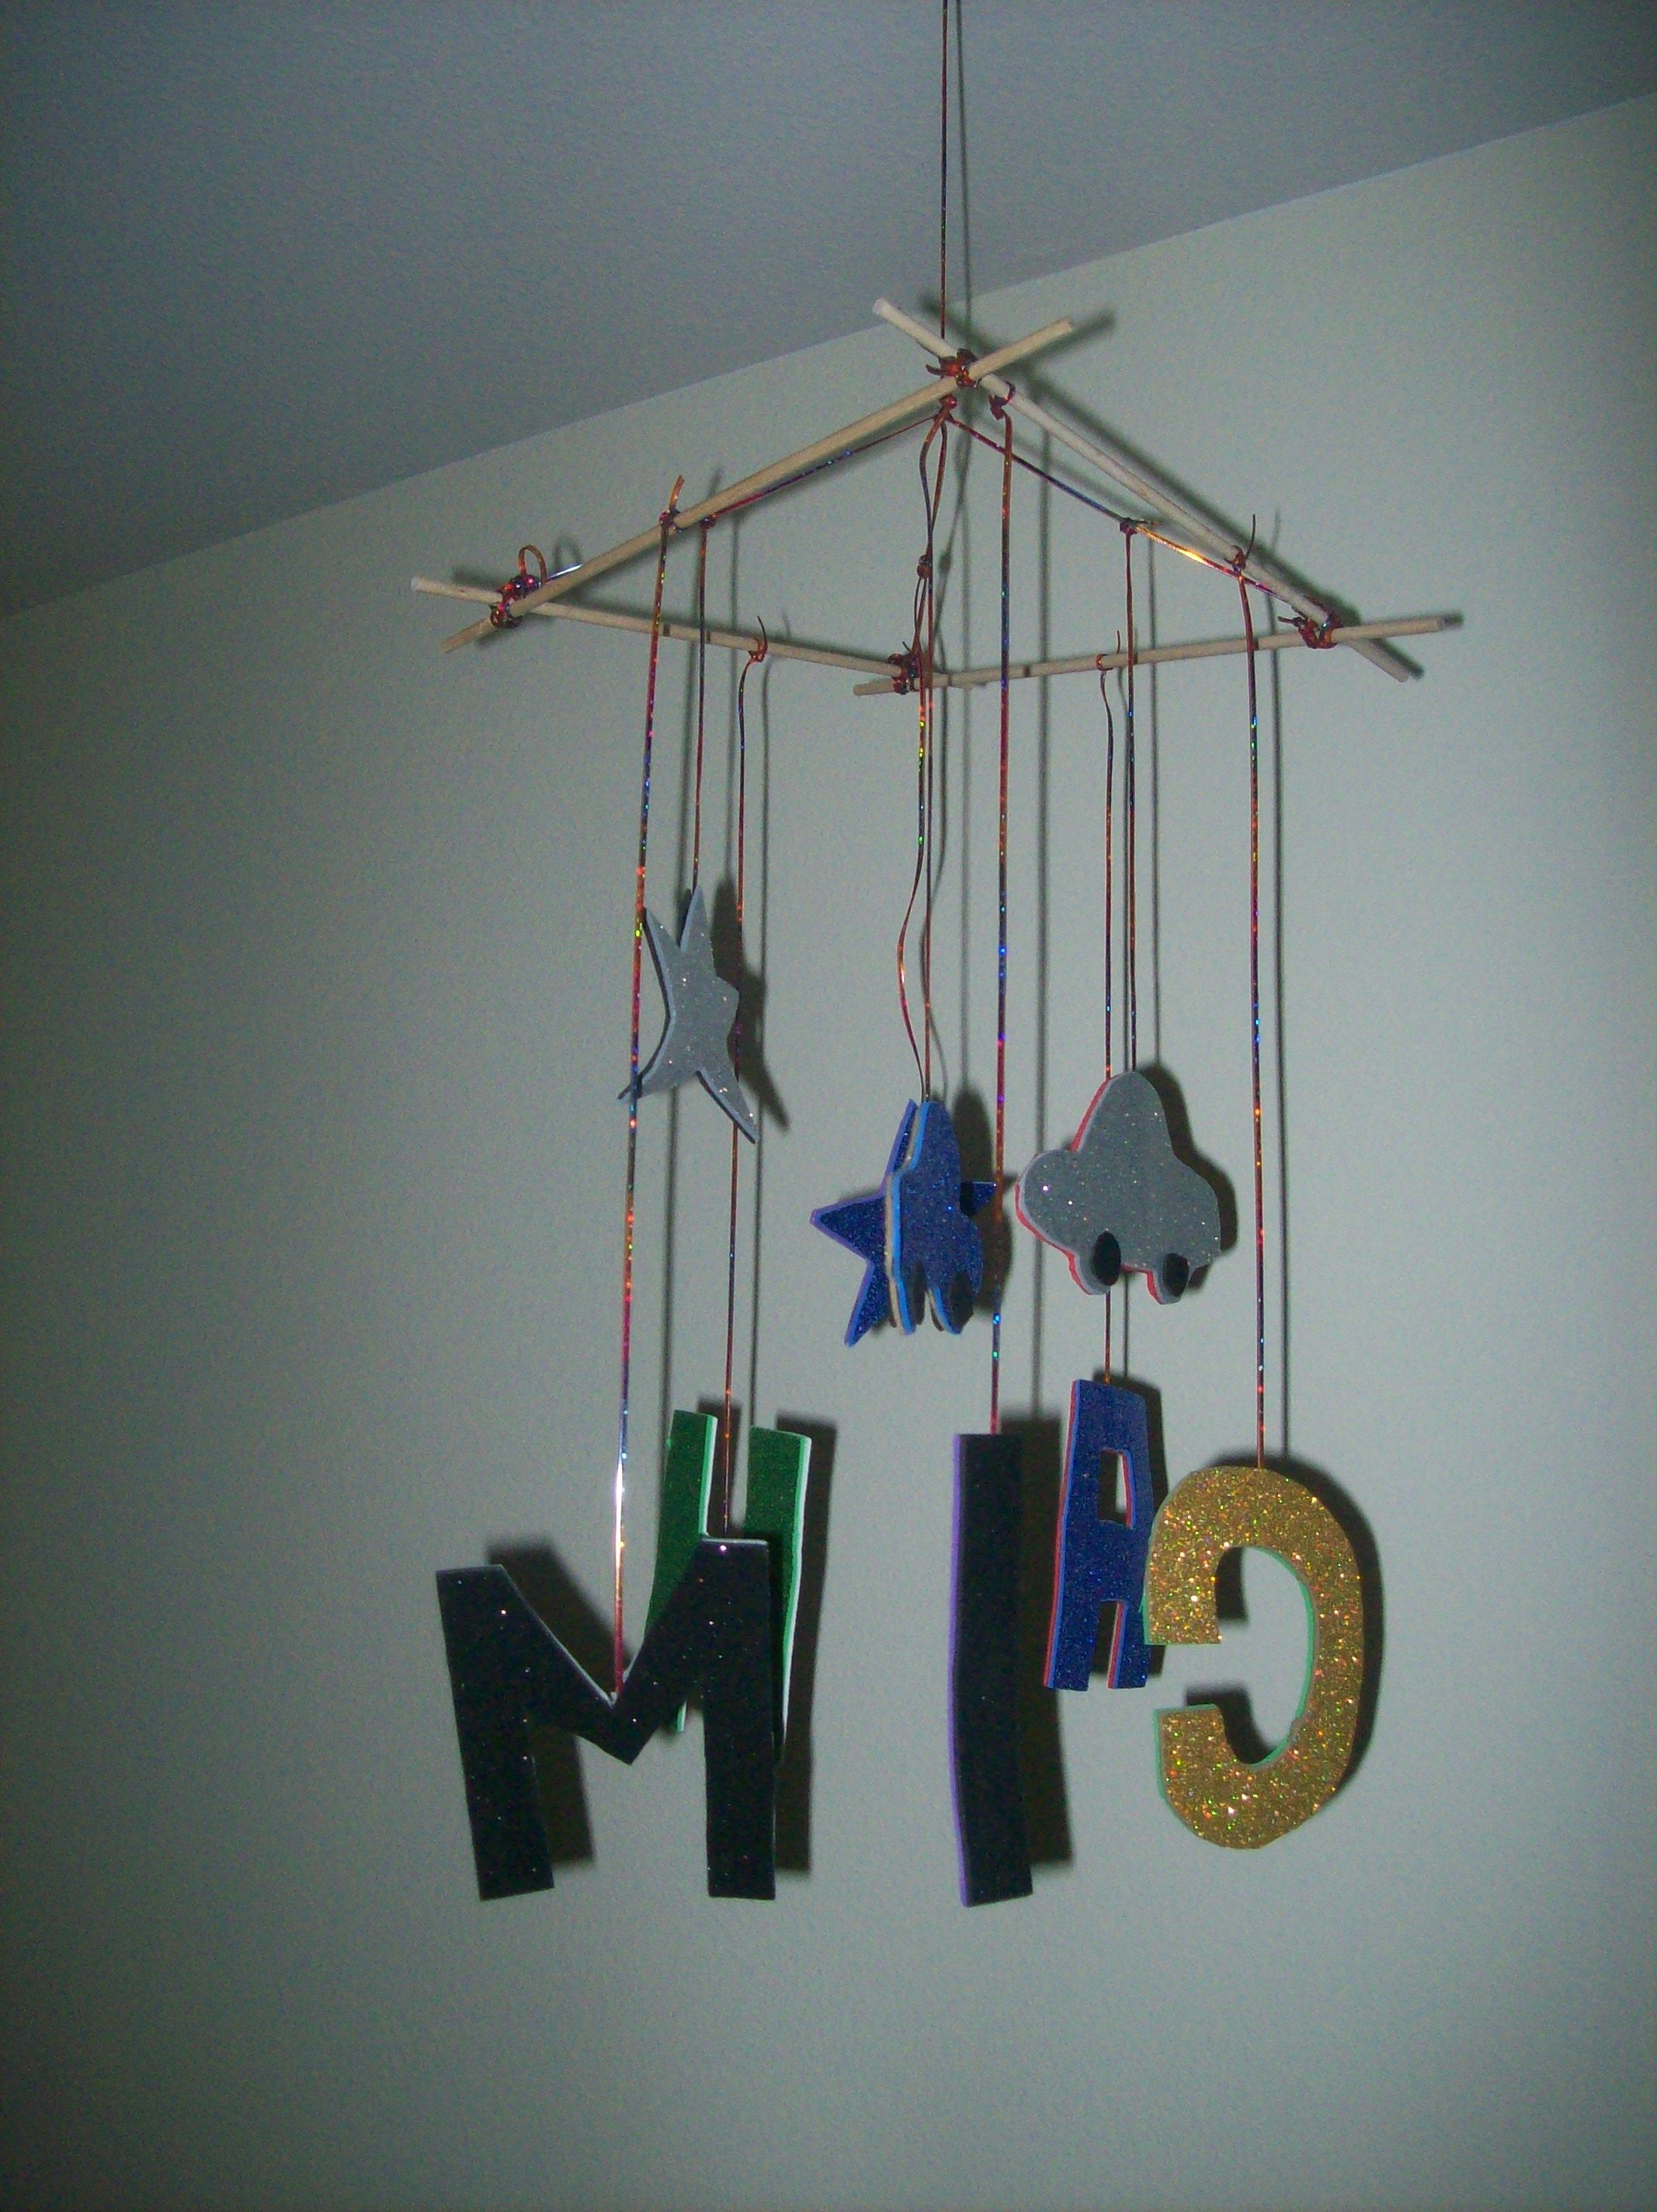 Baby Mobile. Used glitter paper with adhesive back and found colorful twine or string and stuck string in between glitter paper. Hung other end of string on some dowels that i tied together. Super cute and sparkly!